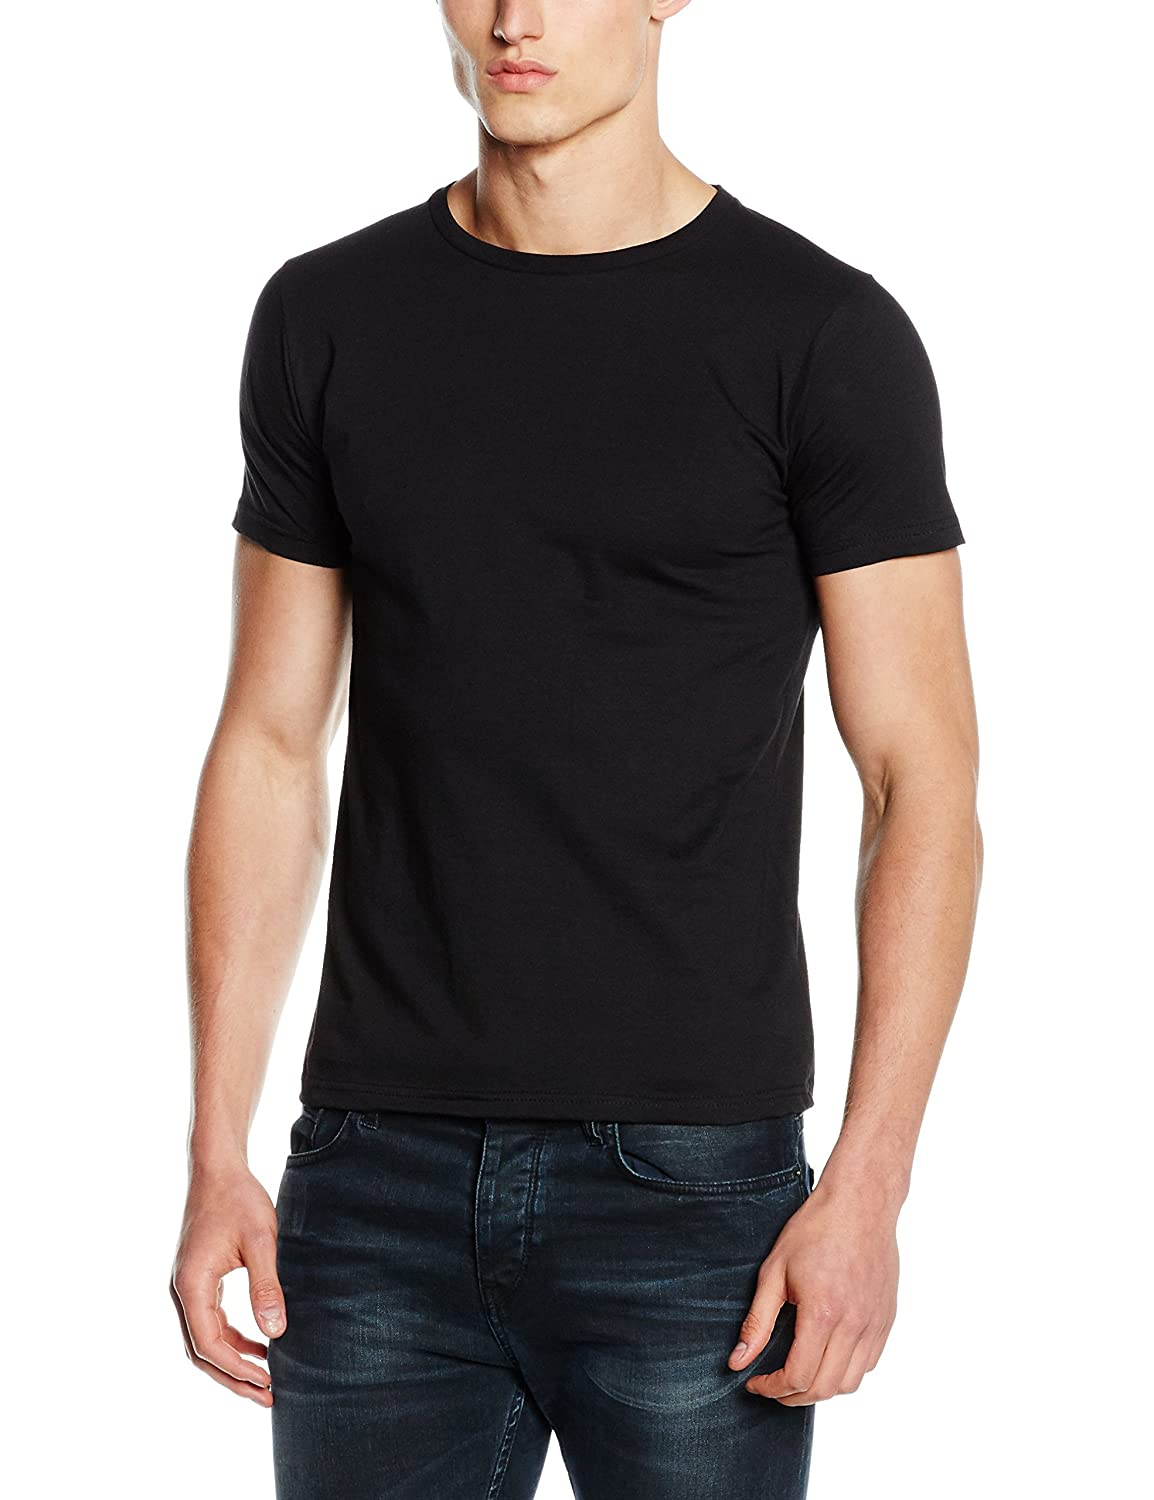 c1fb86cf2190dd Fruit of the Loom Mens Fitted Valueweight Short Sleeve Slim Fit T-Shirt (XL)  (Black)